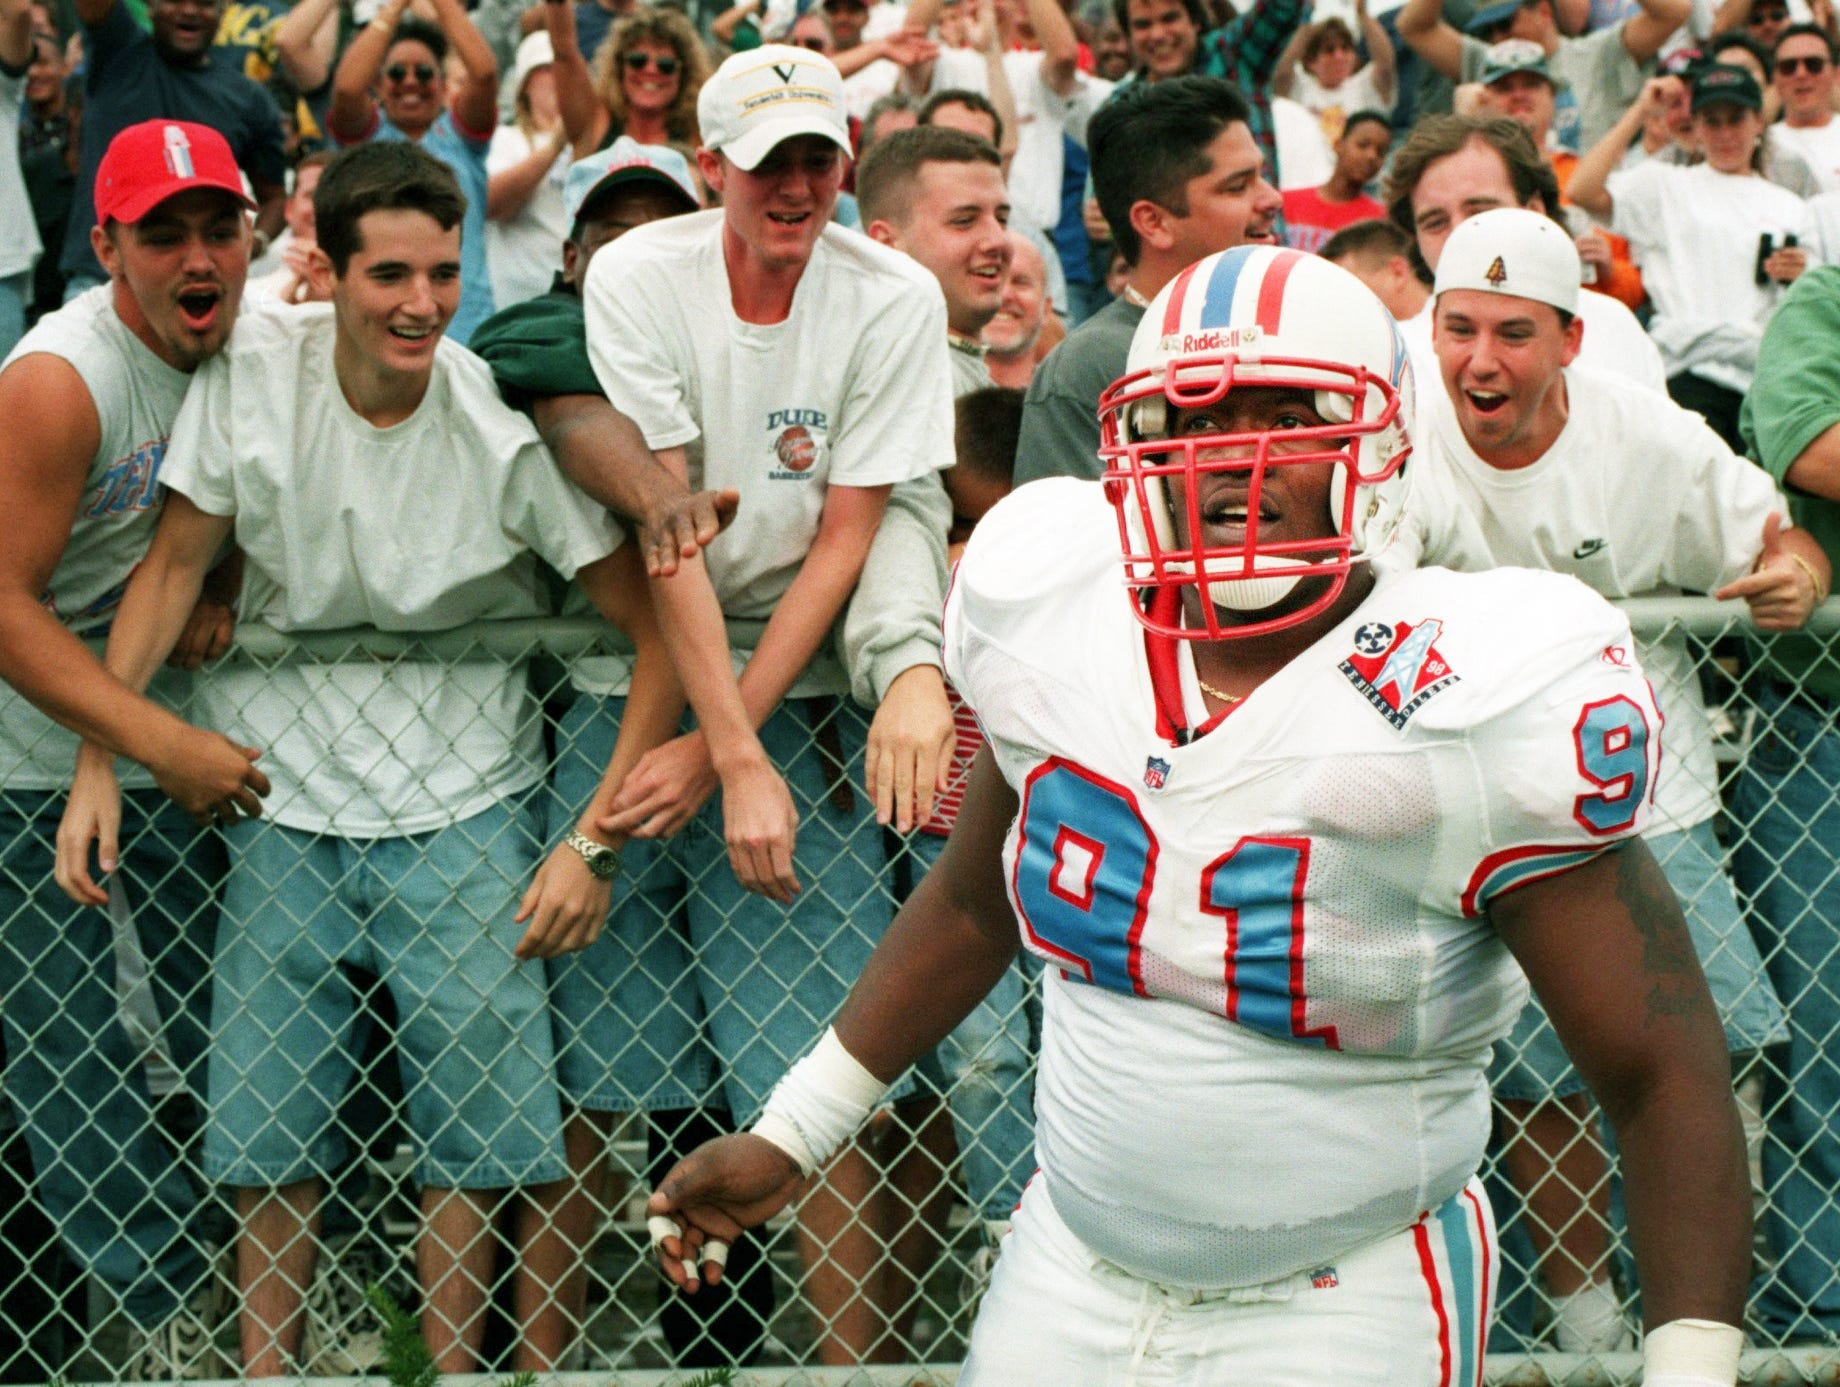 Tennessee Oilers defensive lineman Josh Evans (91) receives adulation from fans after he ran a Cincinnati Bengals' fumble for a touchdown. The touchdown was call back by officials, erasing the score by Evans. The Oilers won big, 44-14 over the Bengals at Vanderbilt Stadium Oct. 18, 1998.